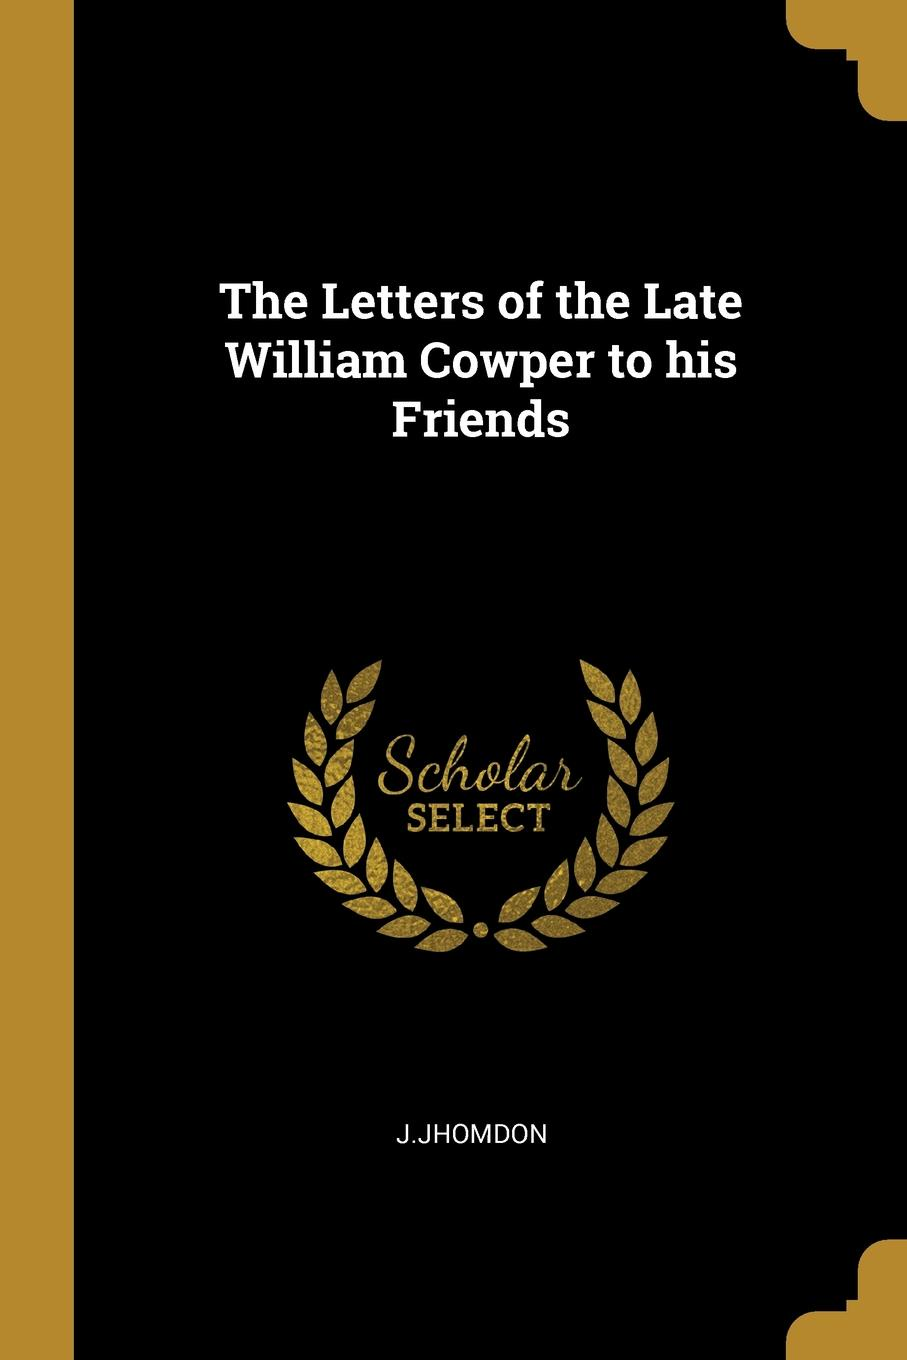 J.Jhomdon. The Letters of the Late William Cowper to his Friends